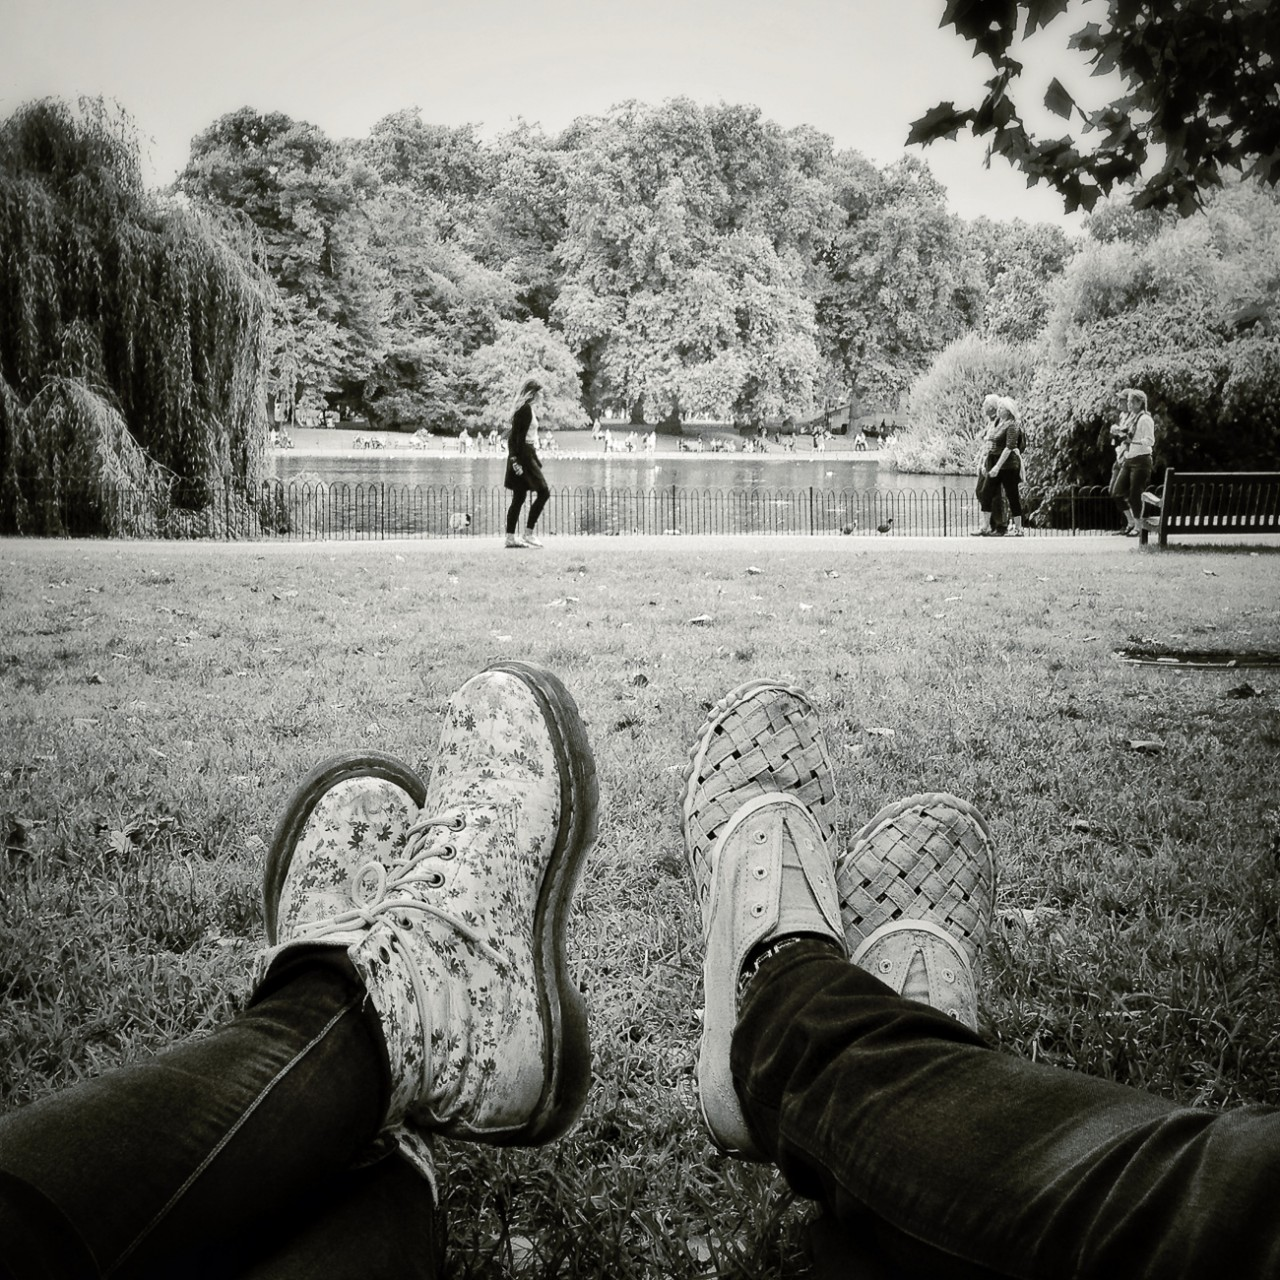 St James's Park in London (from the Kordian by Julius Slowacki) 15.08.13